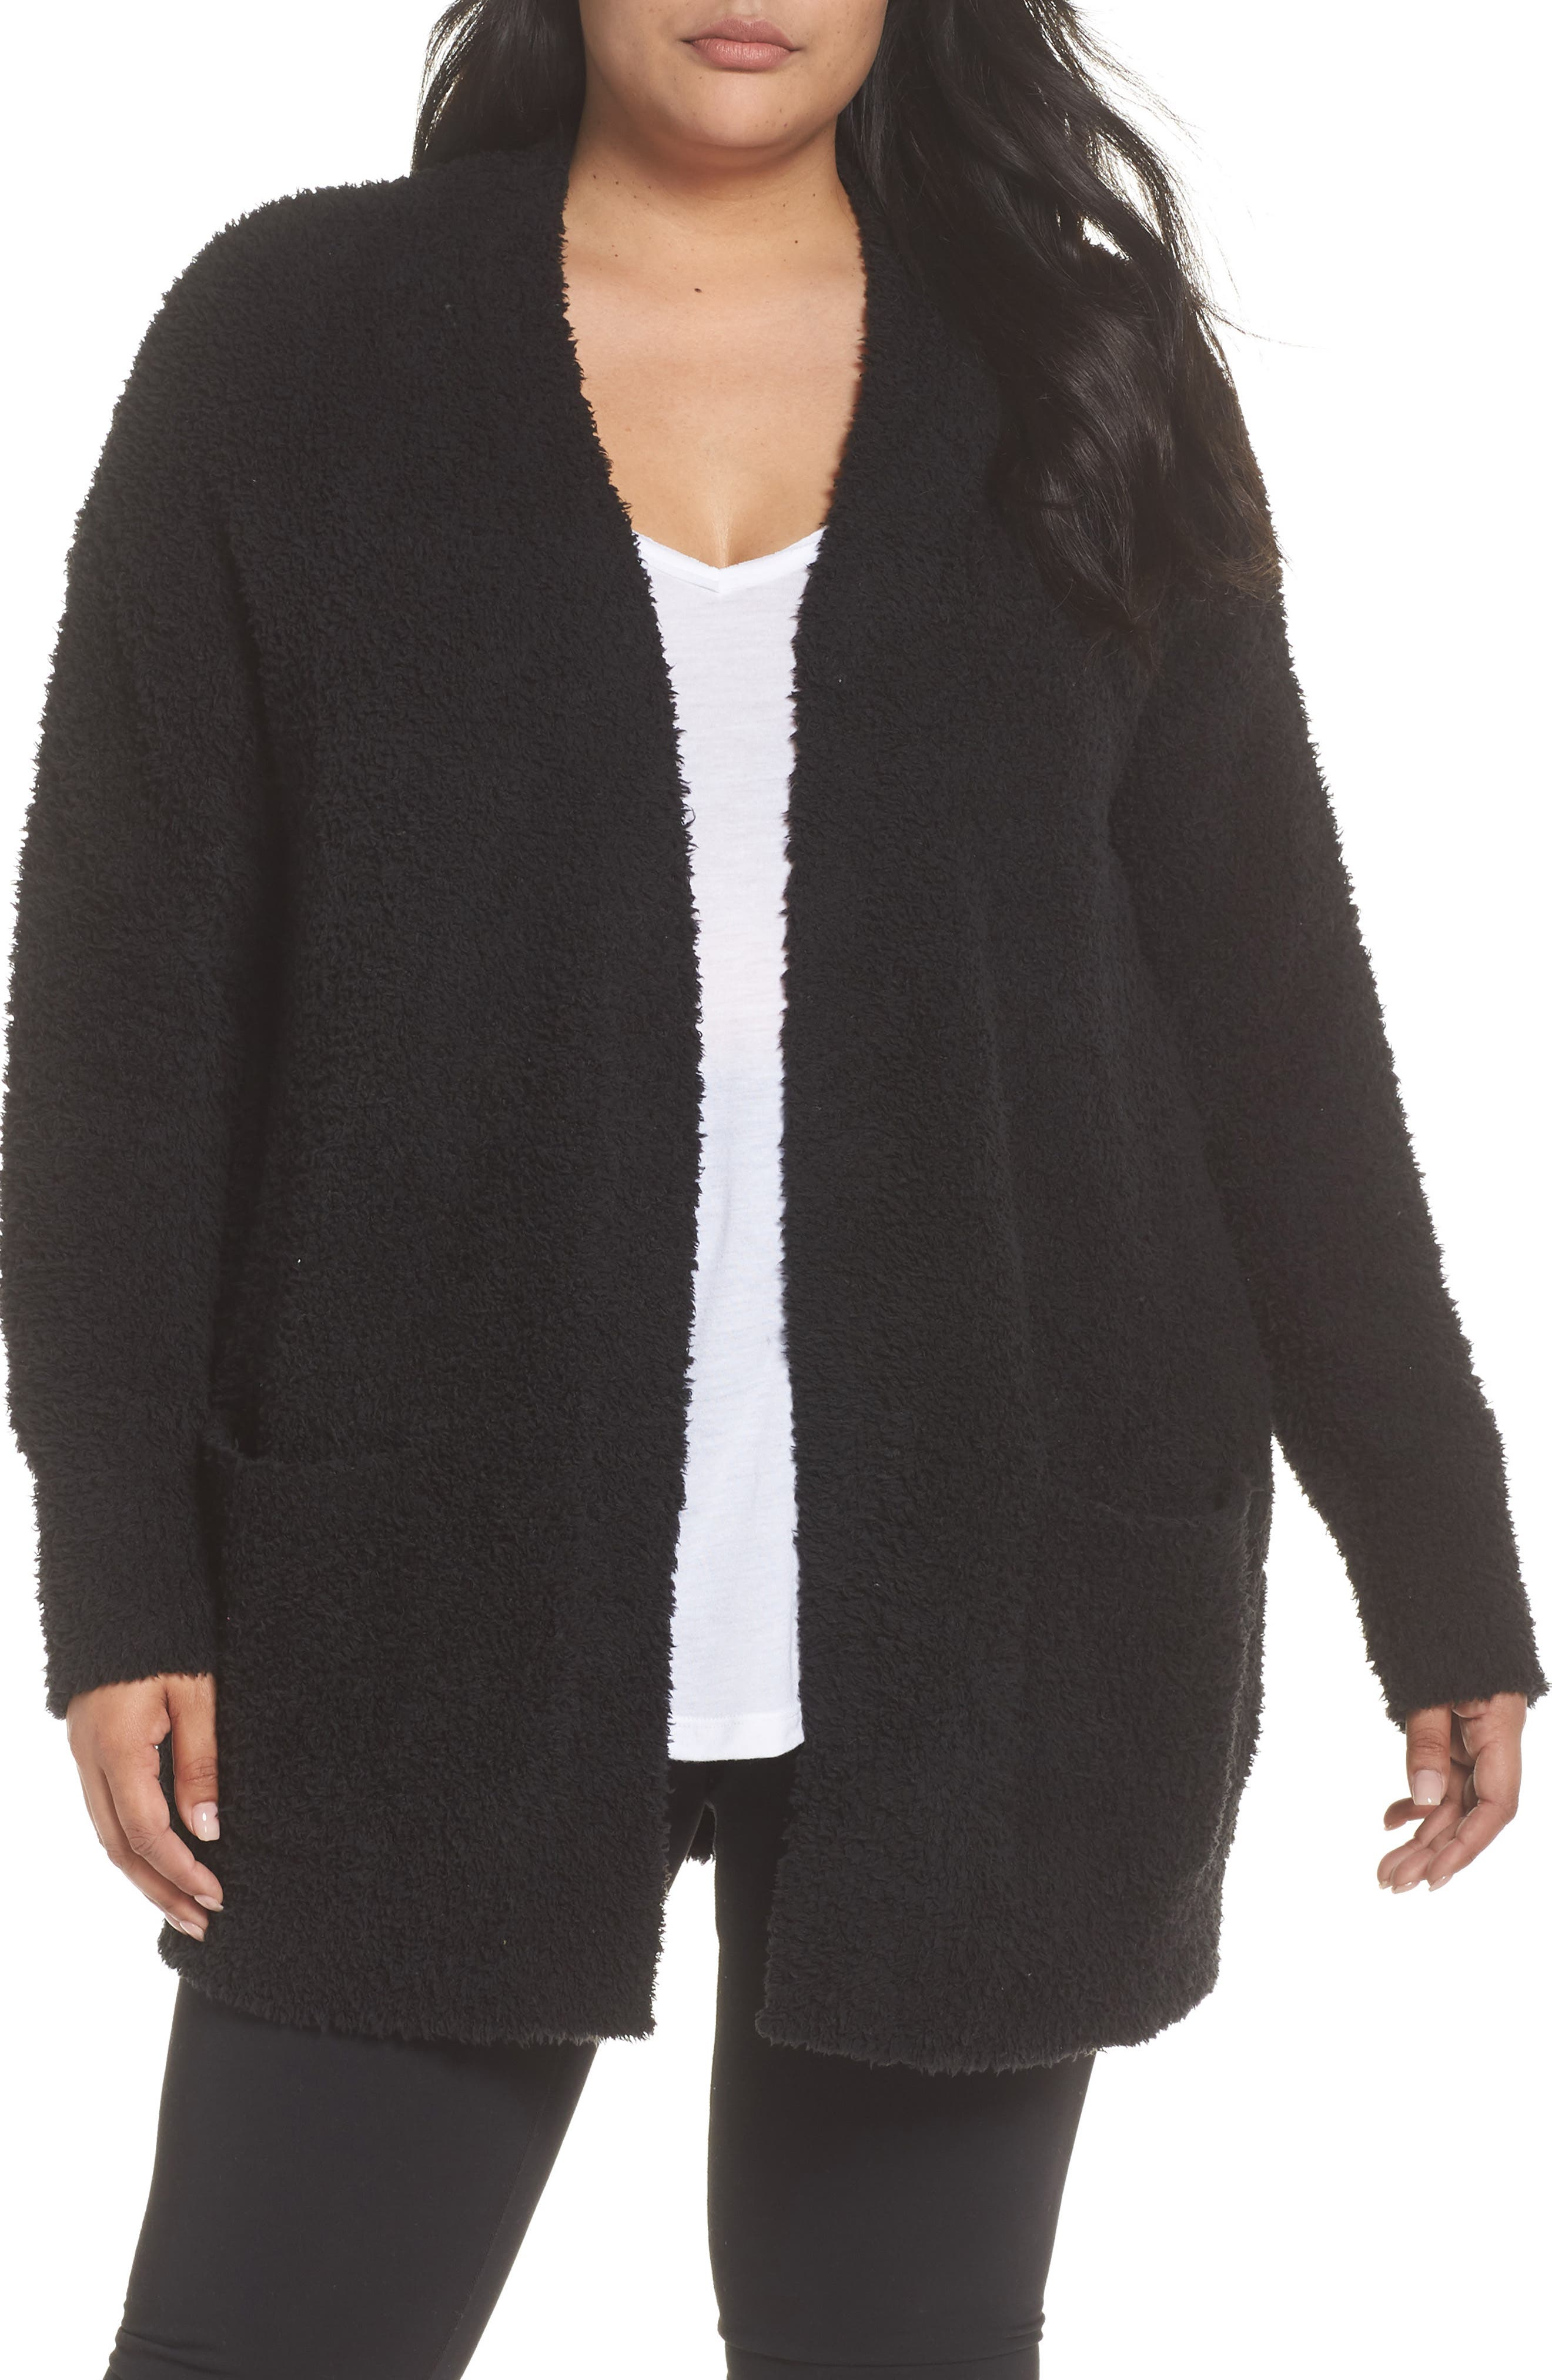 BAREFOOT DREAMS<SUP>®</SUP>, CozyChic<sup>®</sup> Cardigan, Main thumbnail 1, color, BLACK